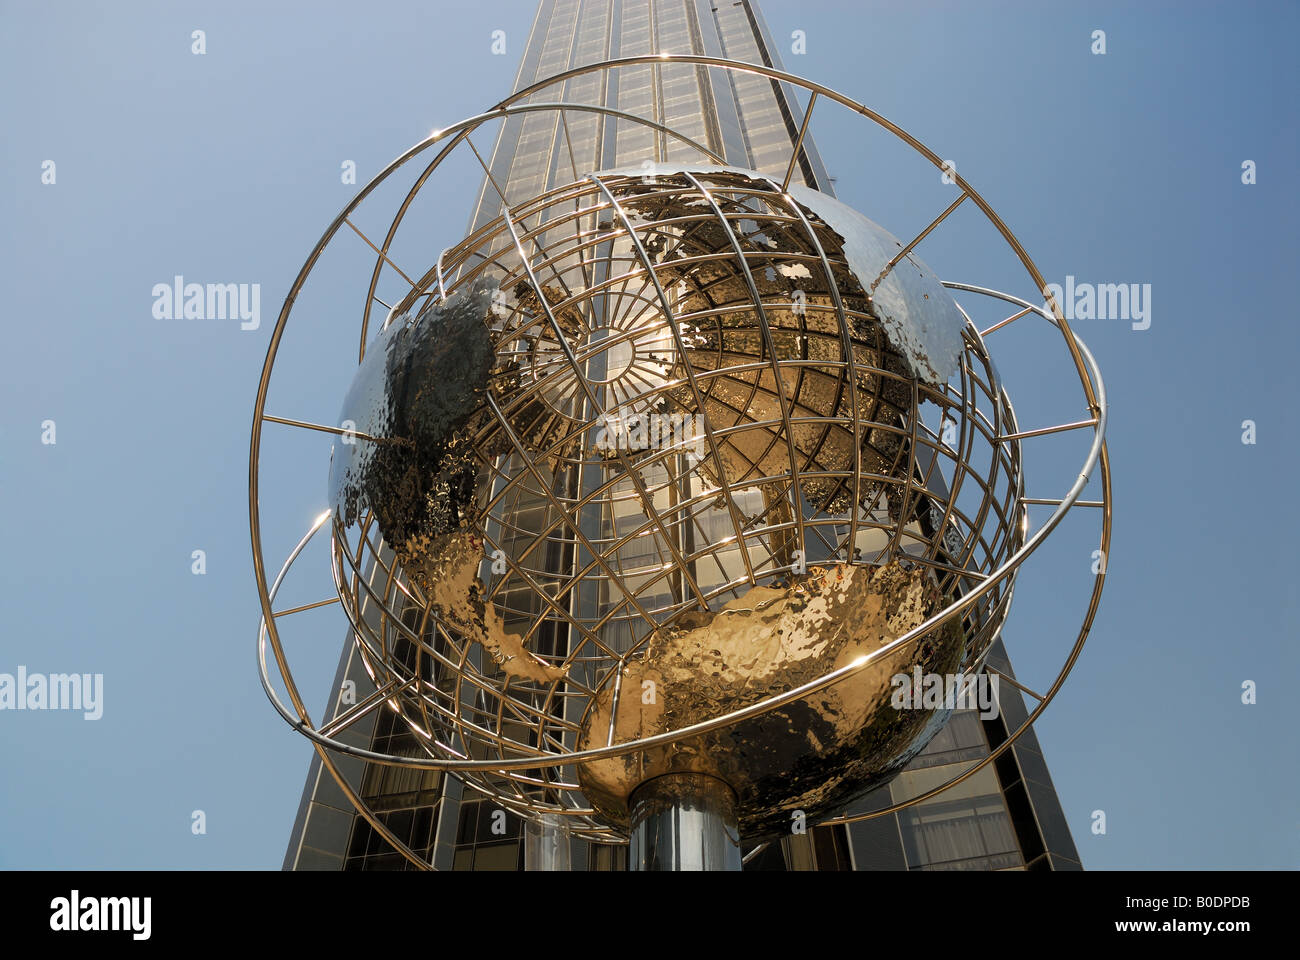 Globe at the Columbus Circle in New York City - Stock Image